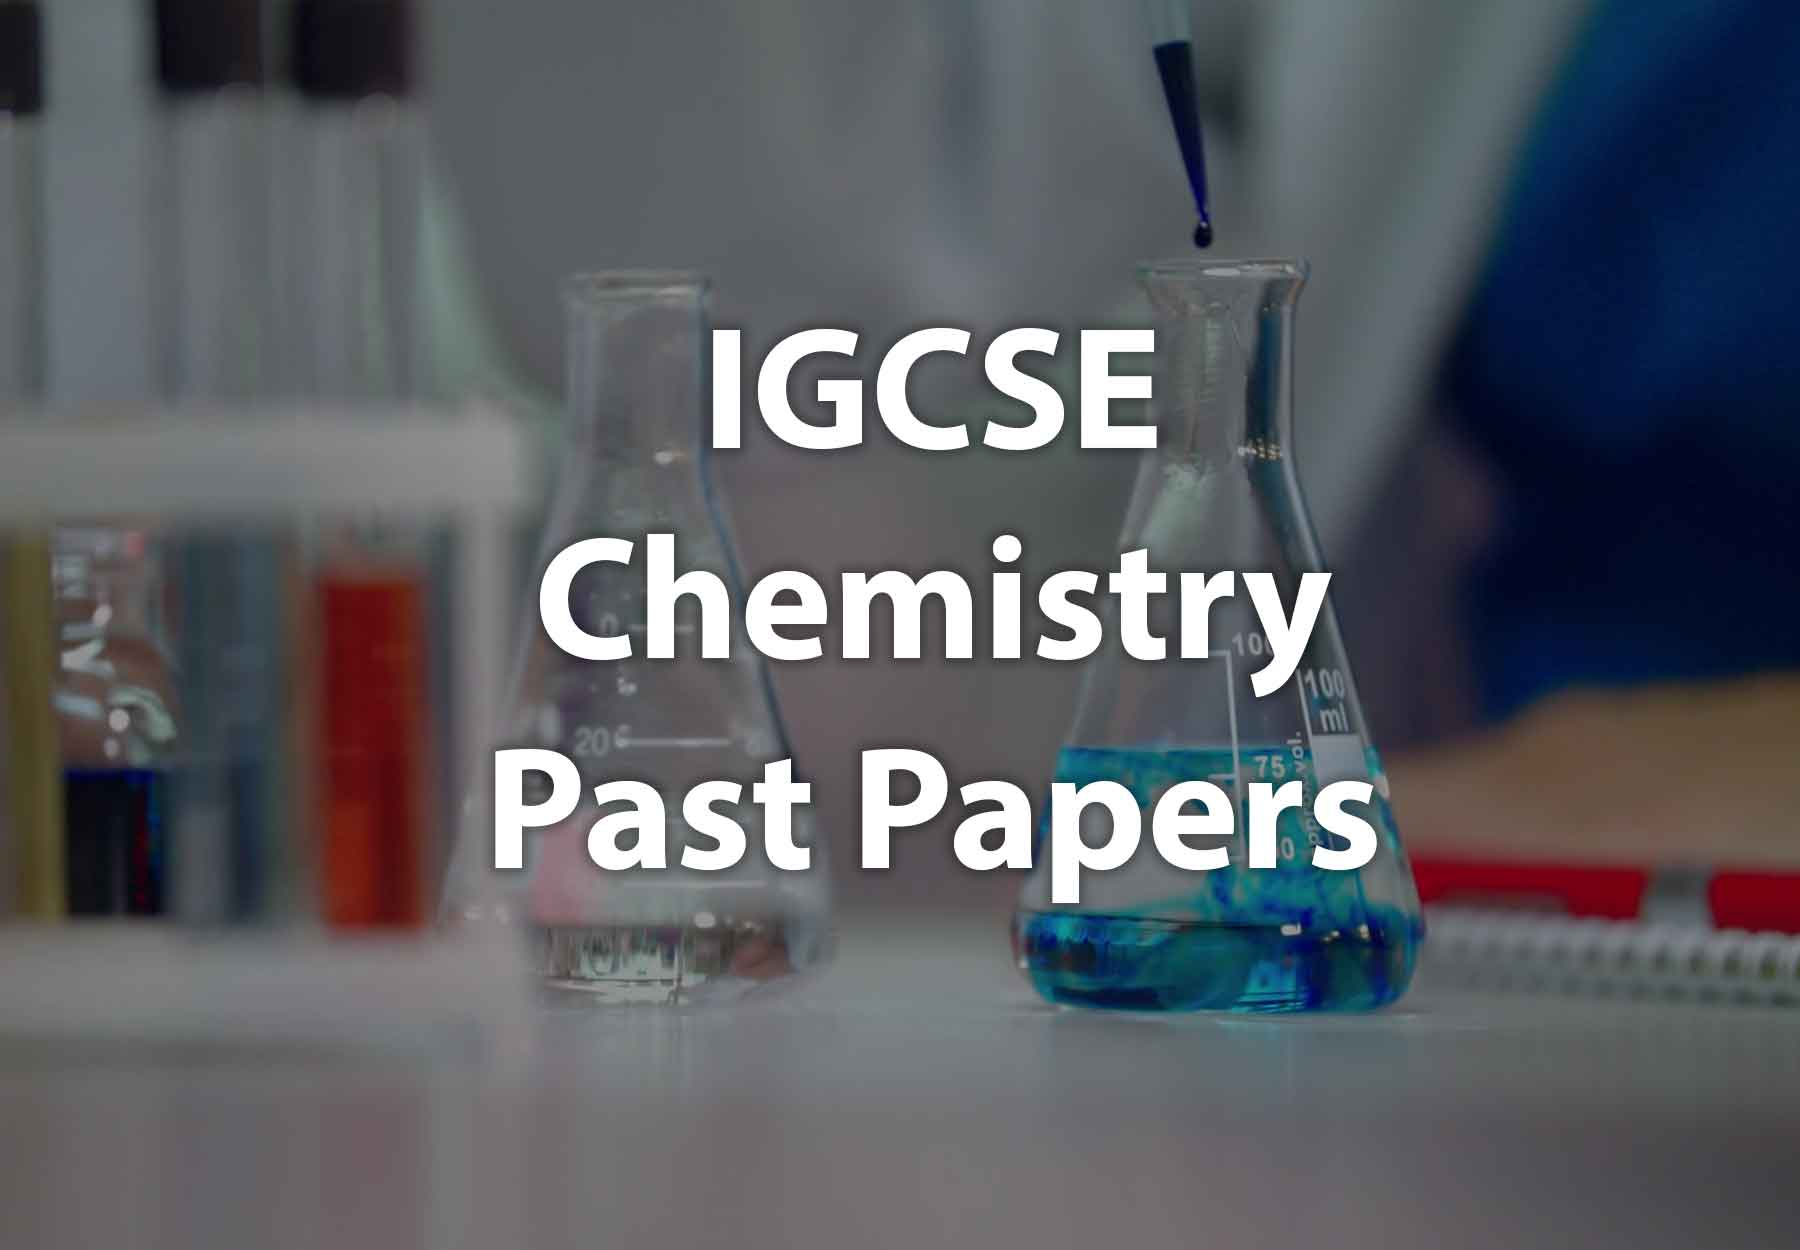 IGCSE Chemistry Past Papers